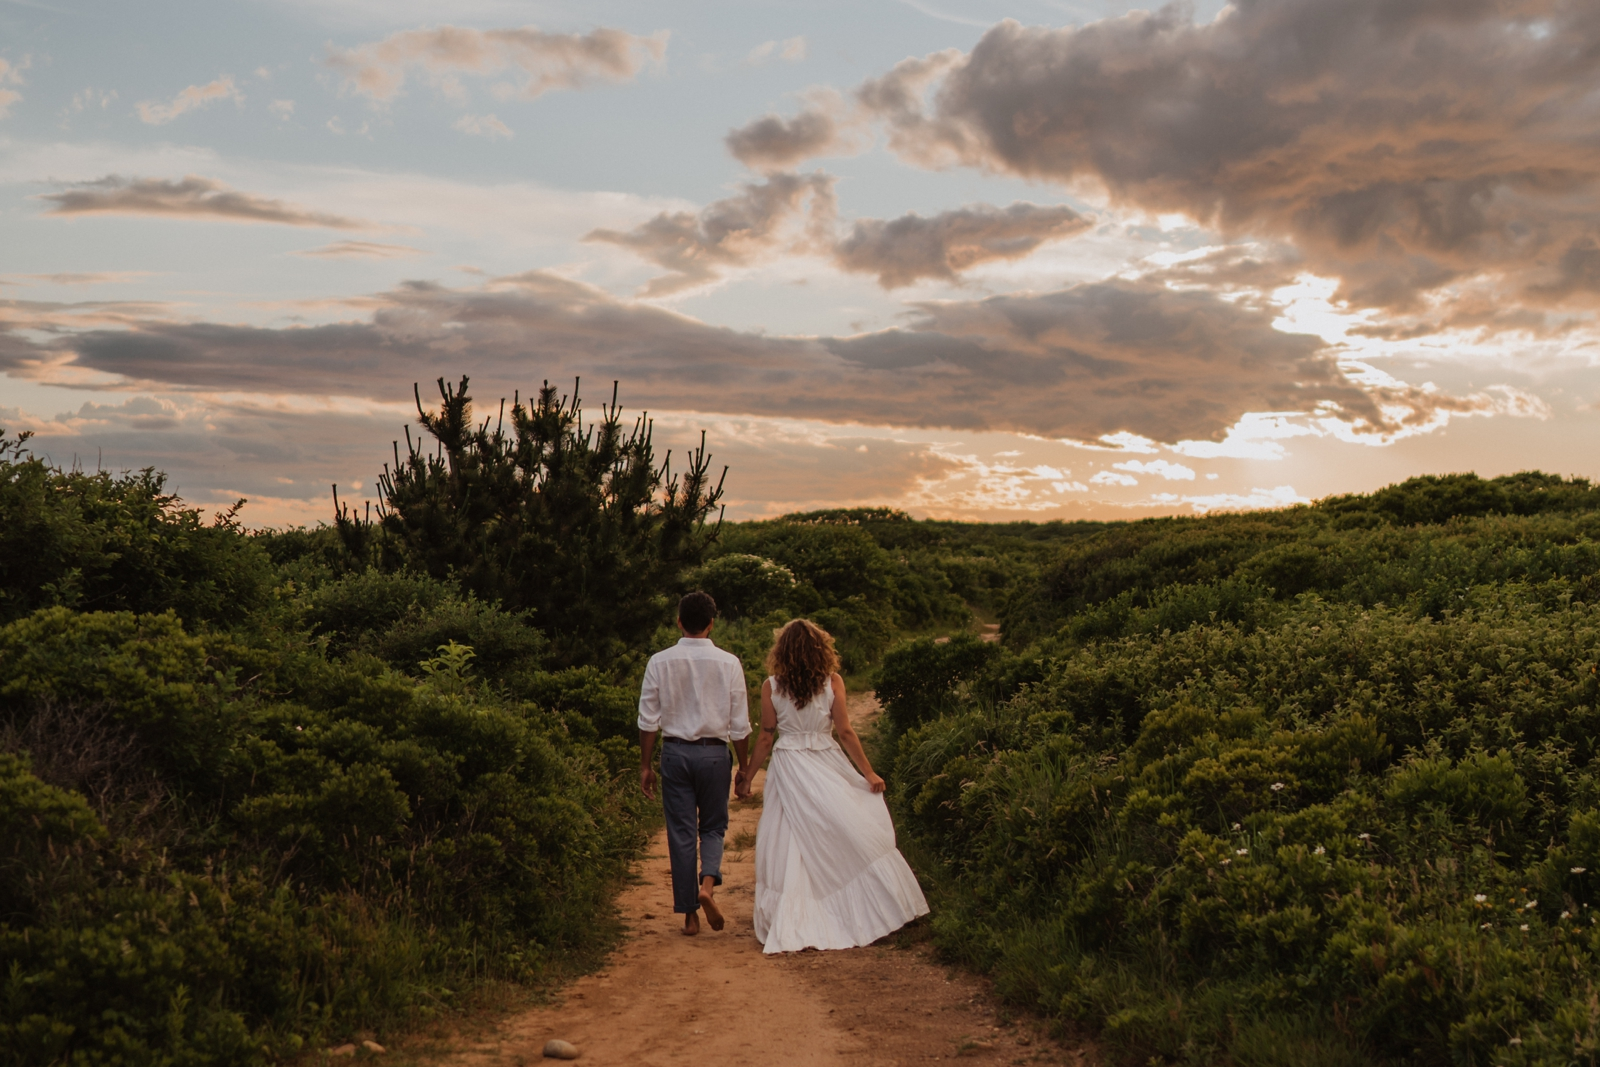 JJP_Nikki & Bud_Shadmoor_Montauk_NY_Cliff Engagement Session110.jpg_blog.jpg